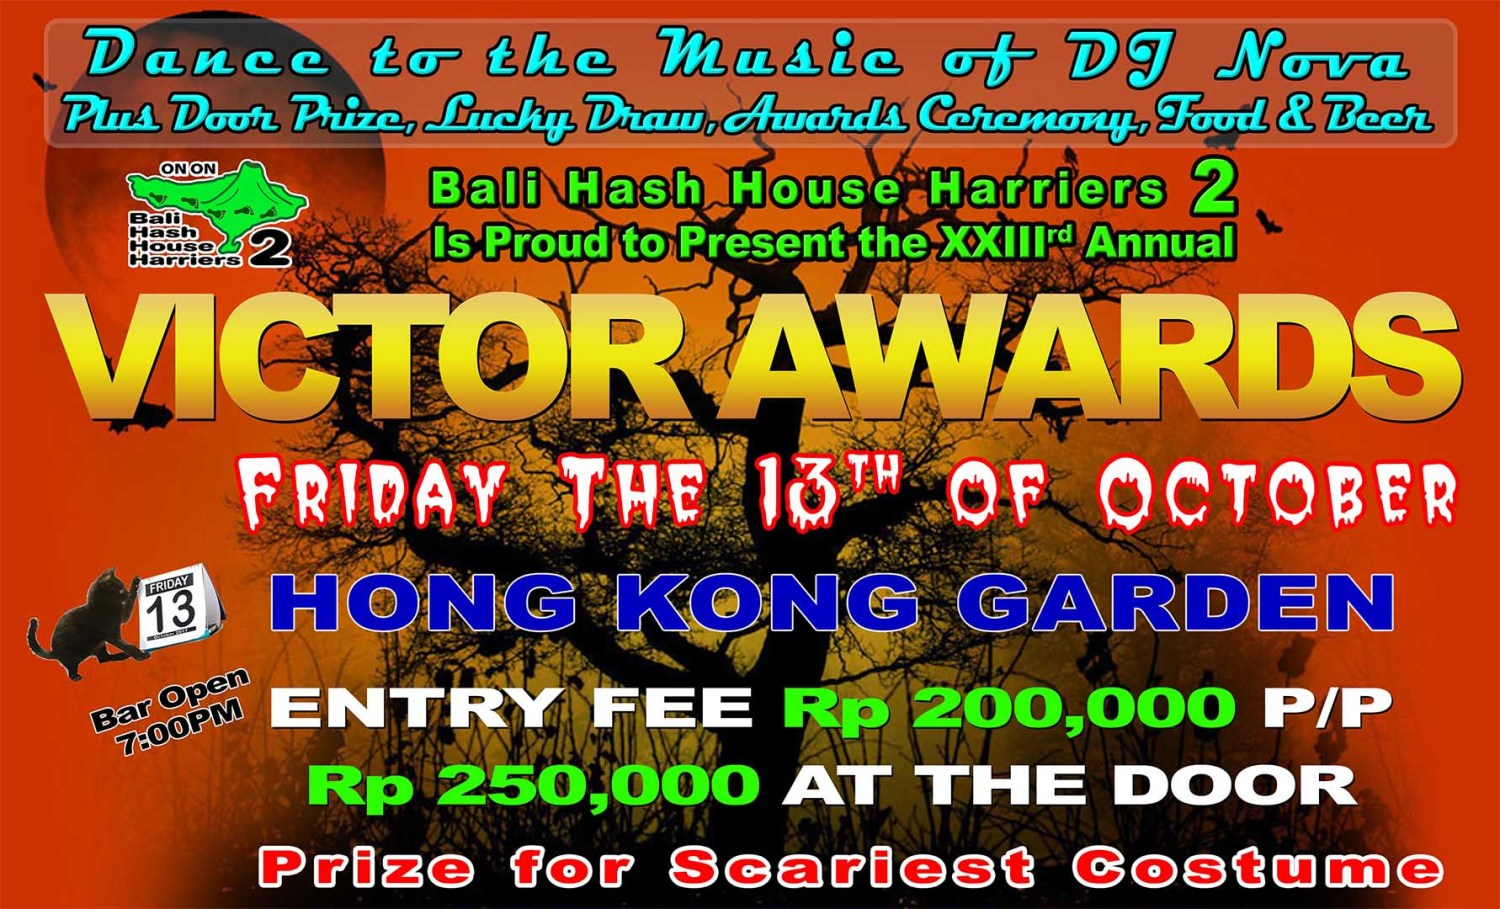 Bali Hash House Harriers 2 Is Proud to Present the XXIIIrd Annual VICTOR AWARDS